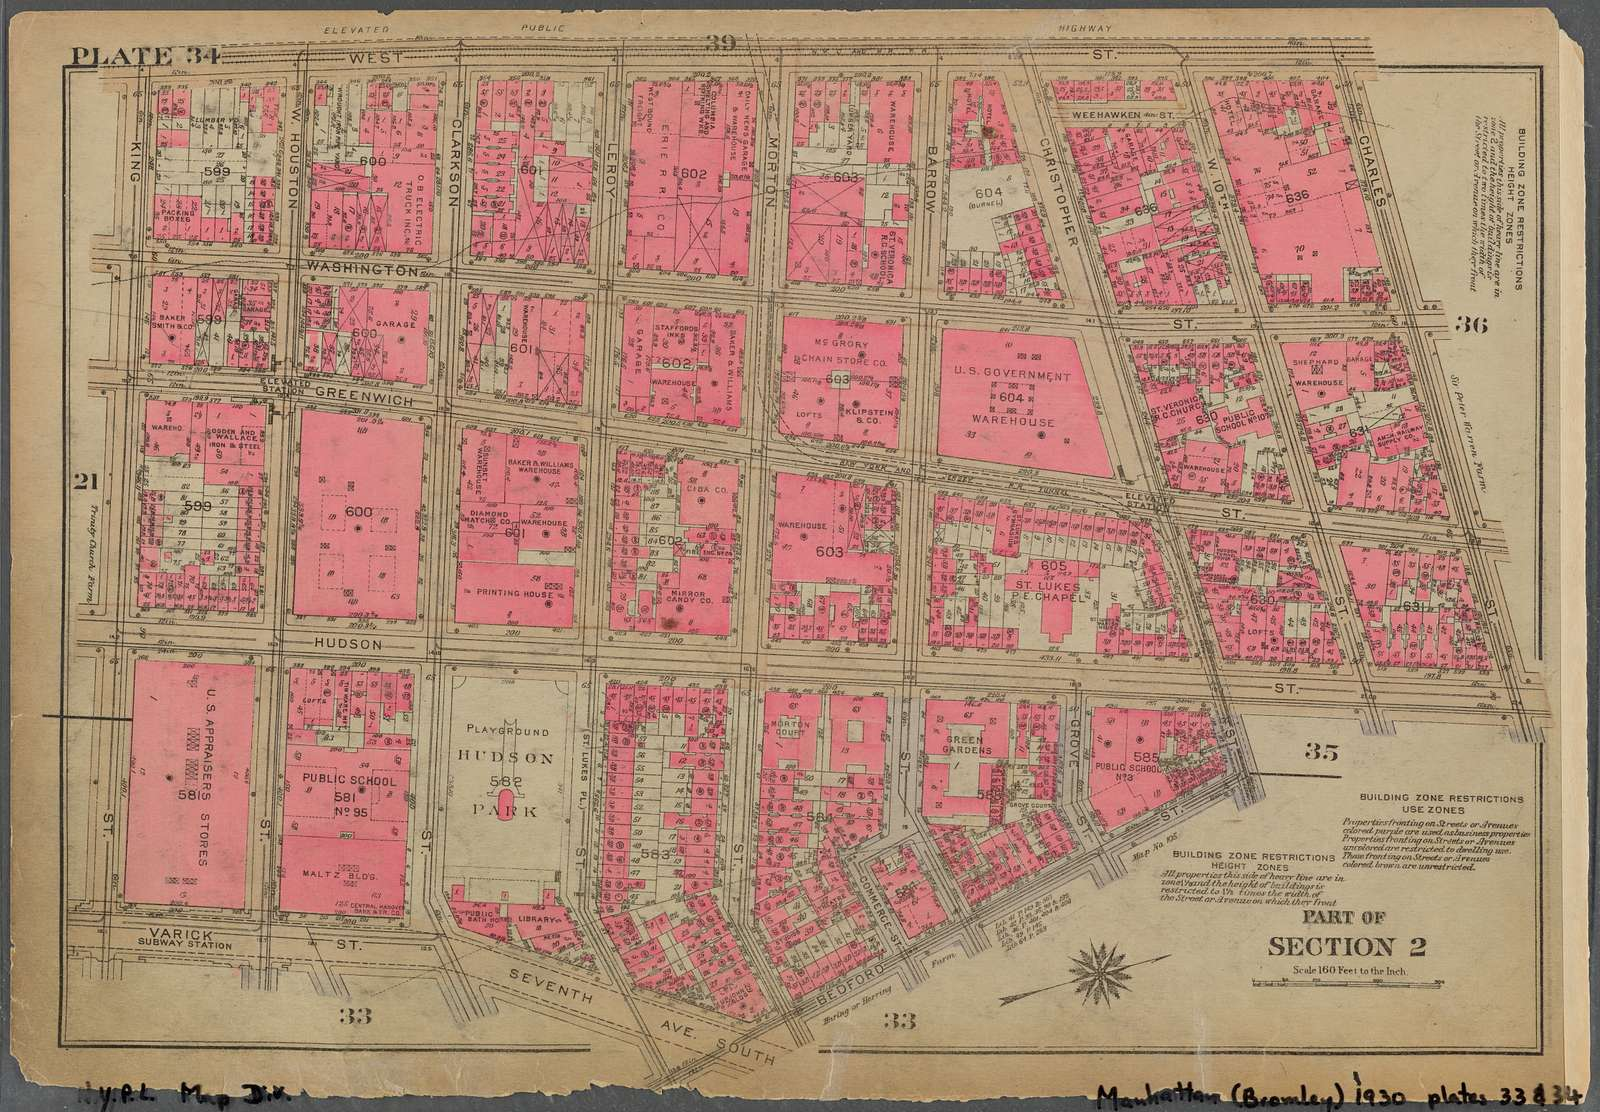 Plate 34, Part of Section 2: [Bounded by West Street, Charles Street, Hudson Street, Christopher Street, Bedford Street, Seventh Avenue South, Varick Street and King Street]